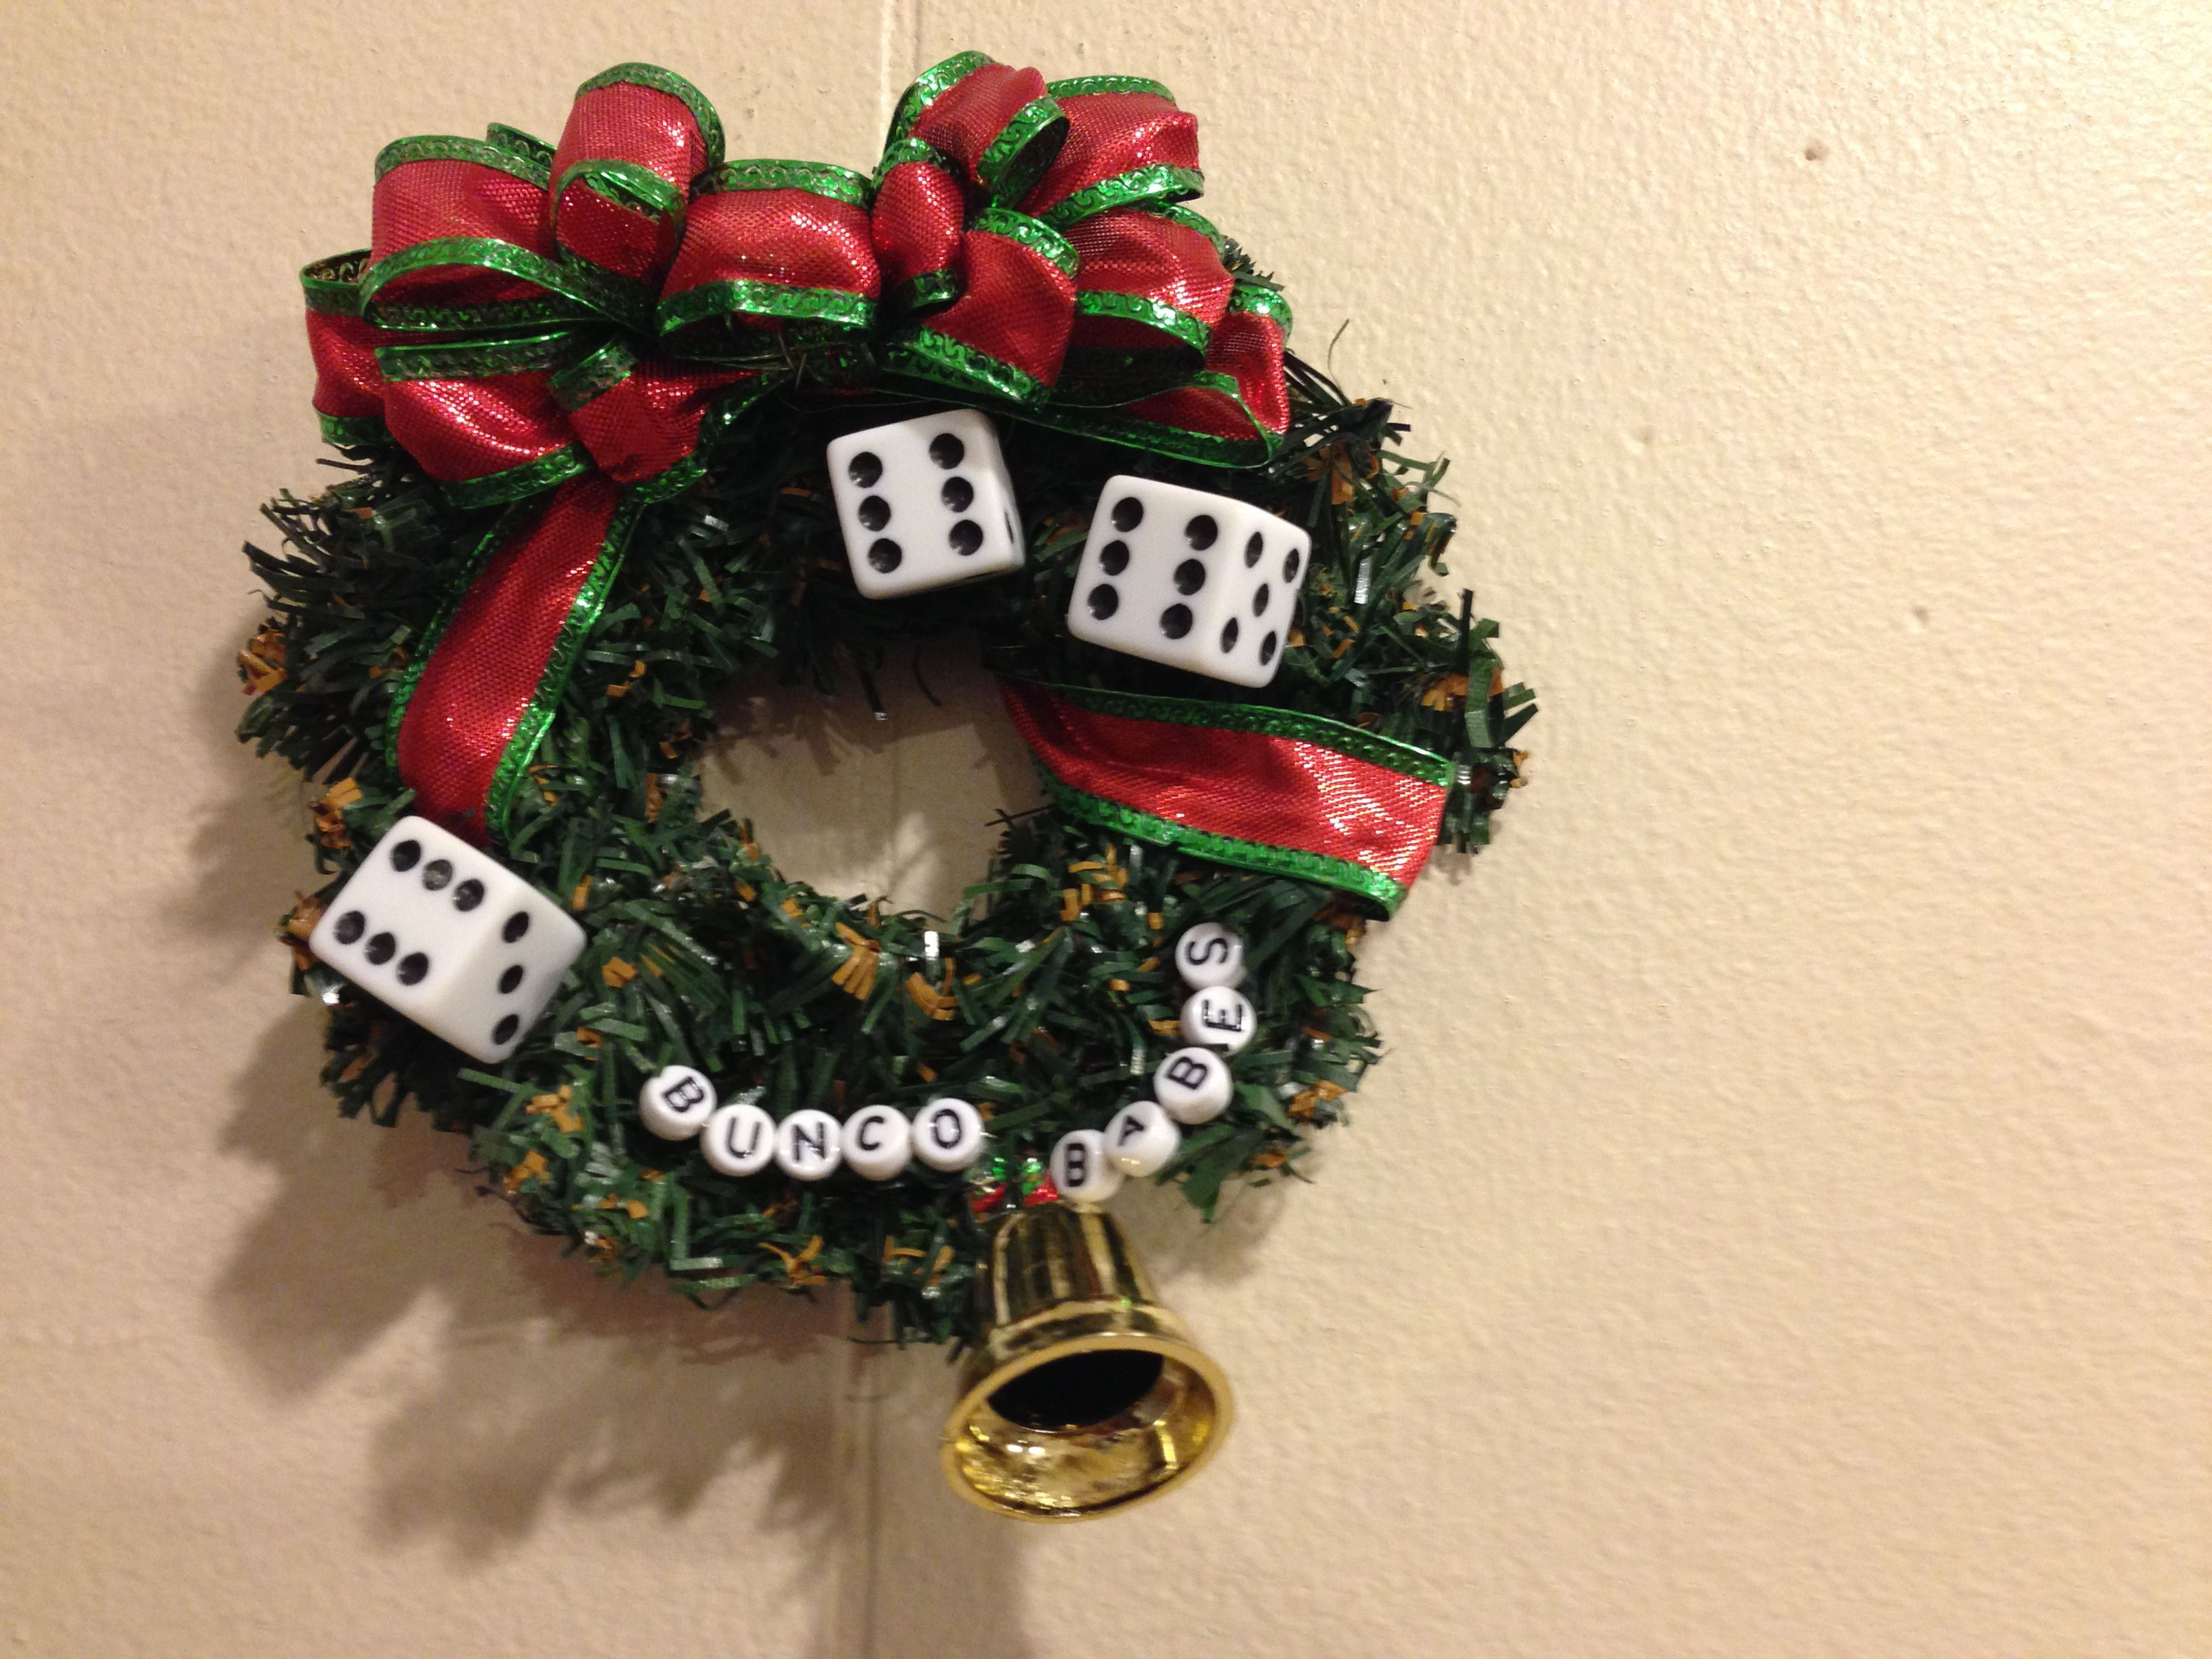 Christmas bunco ornament! | Christmas ideas in 2018 | Pinterest ...